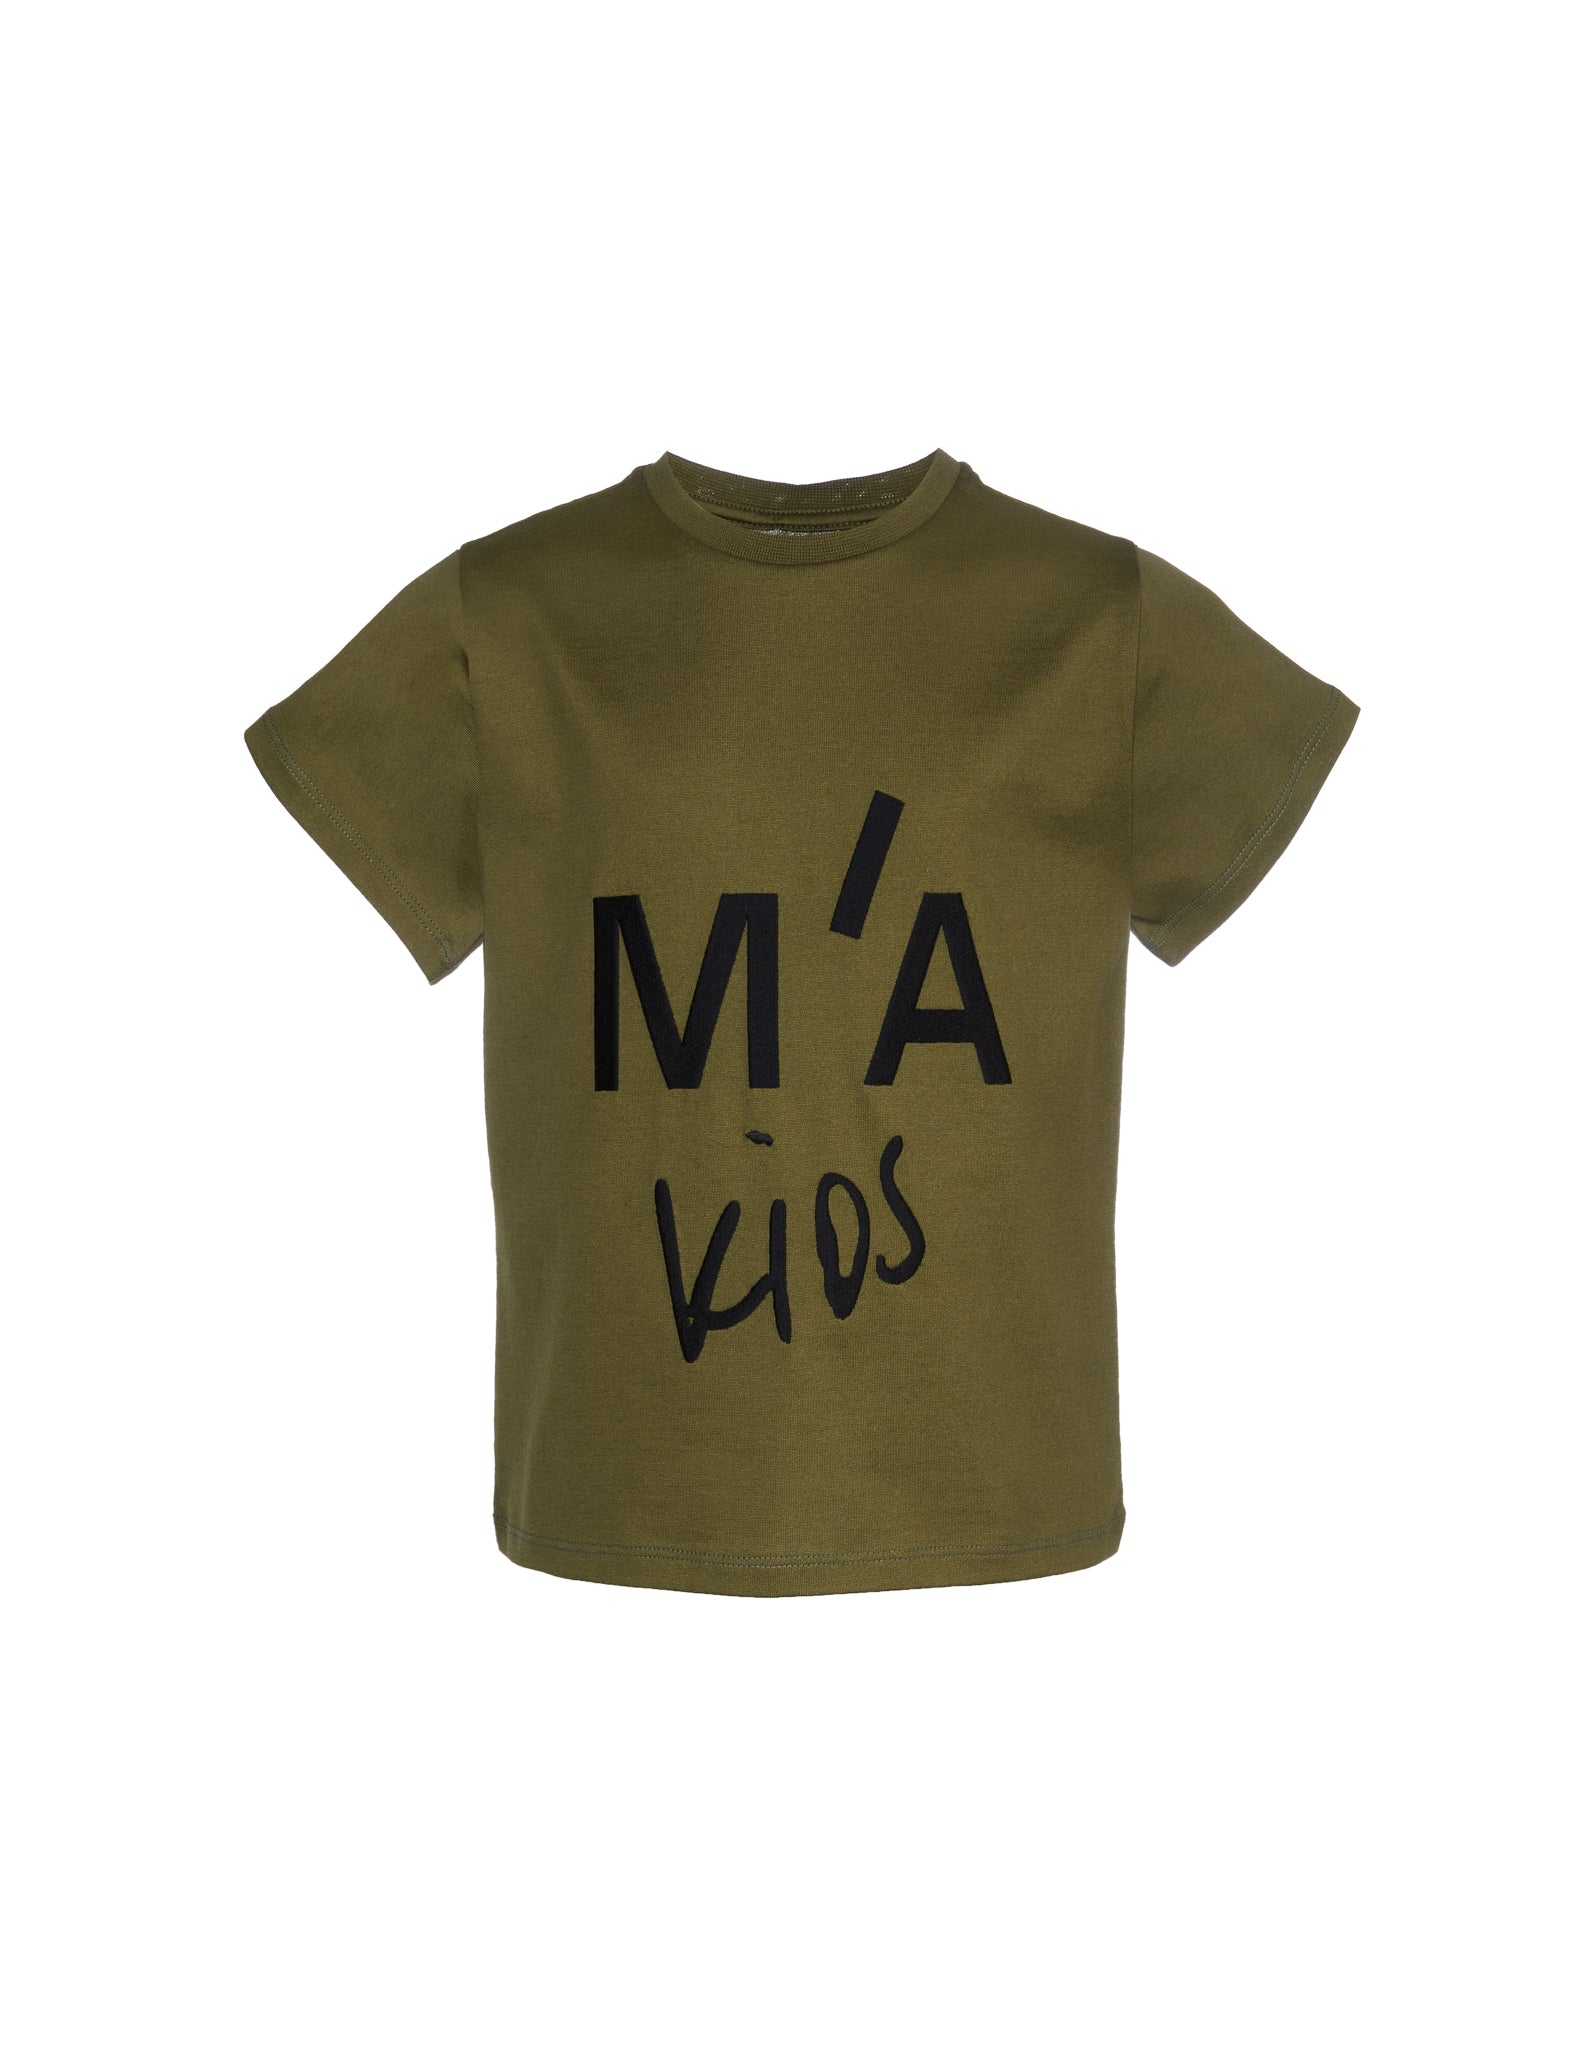 JERSEY EMBROIDERED T-SHIRT IN KHAKI